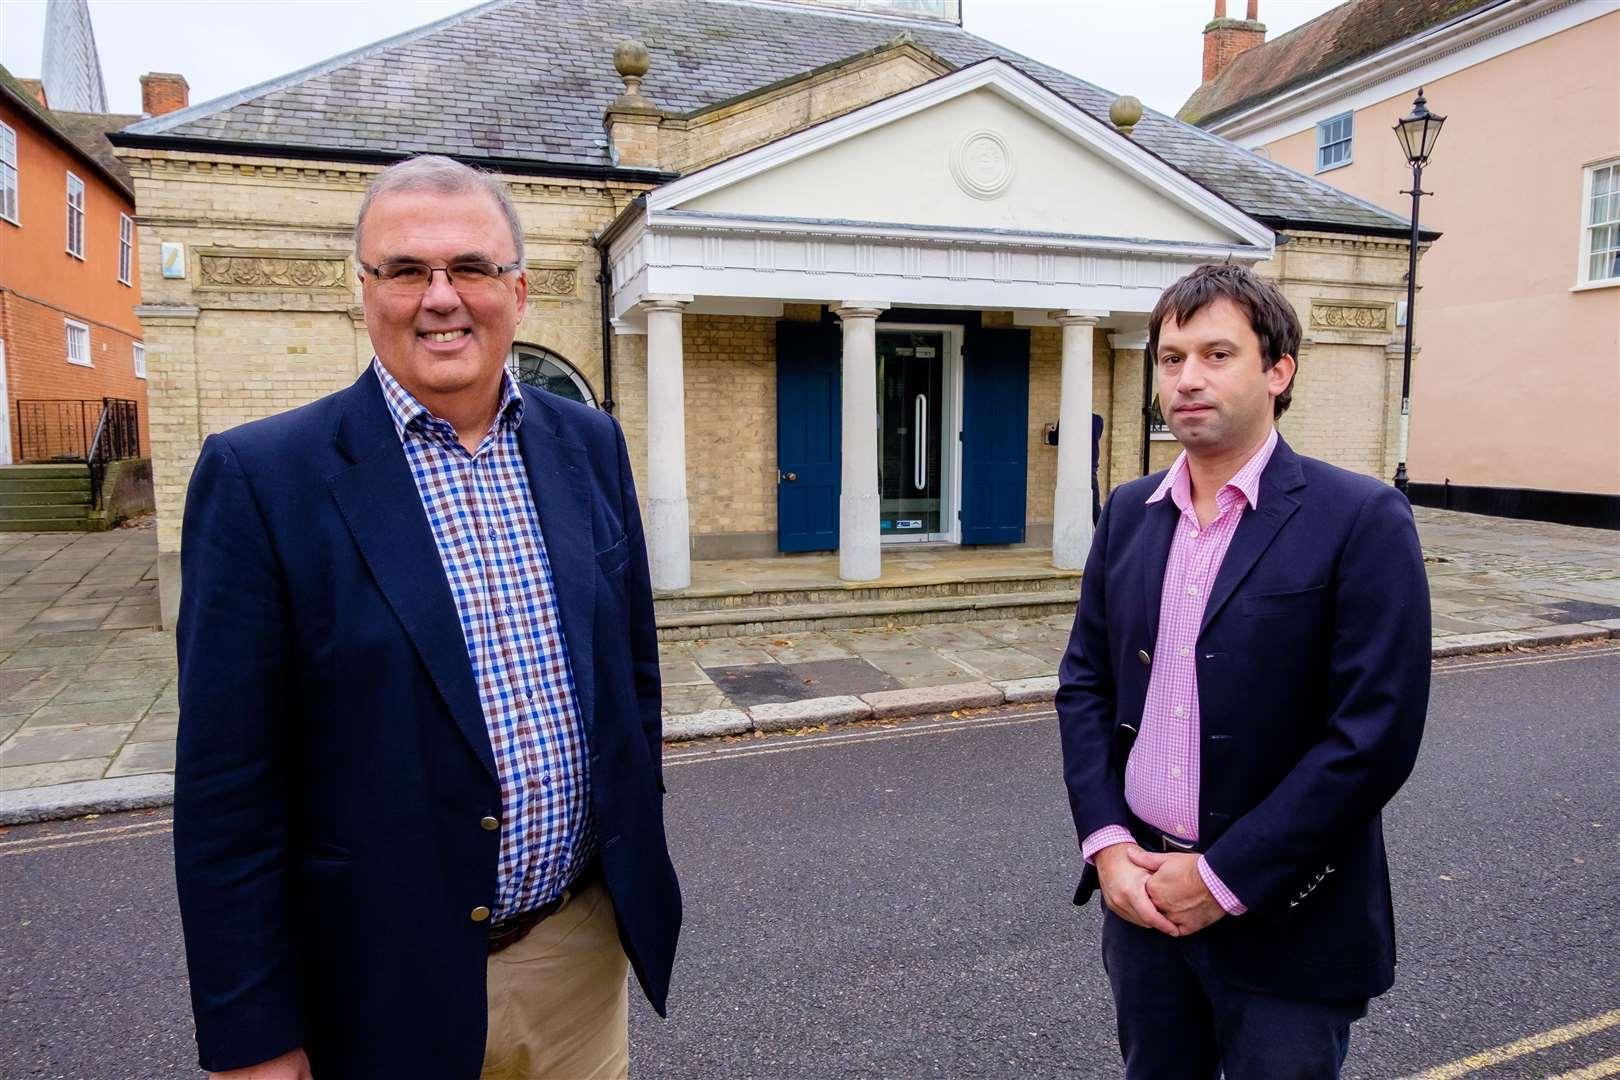 Robert Chapman and Benedict Stickels have bought Hadleigh Corn Exchange and turned it into a new estate agency business called Chapman Stickels. Pictured are Robert Chapman and Benedict Stickels...Mark Bullimore Photography 2019. (19905783)